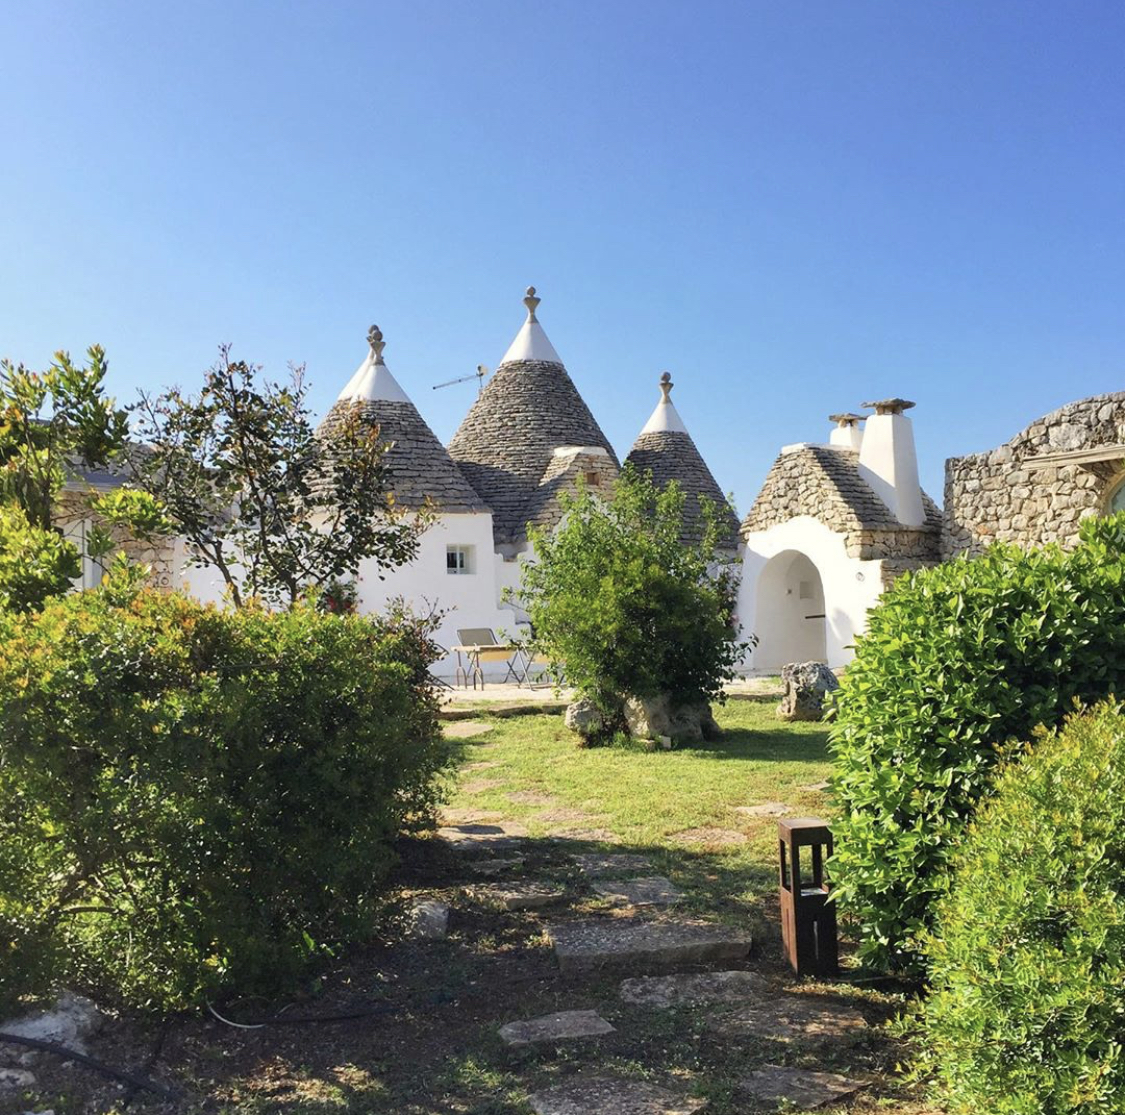 If You're Going to Puglia, Please Don't Miss the Trulli (Fodor's)   Far from the Colosseum and Italy's other famous sites lies a land of gently rolling hills, fields of olive trees, and round white houses that look like something out of a fairytale